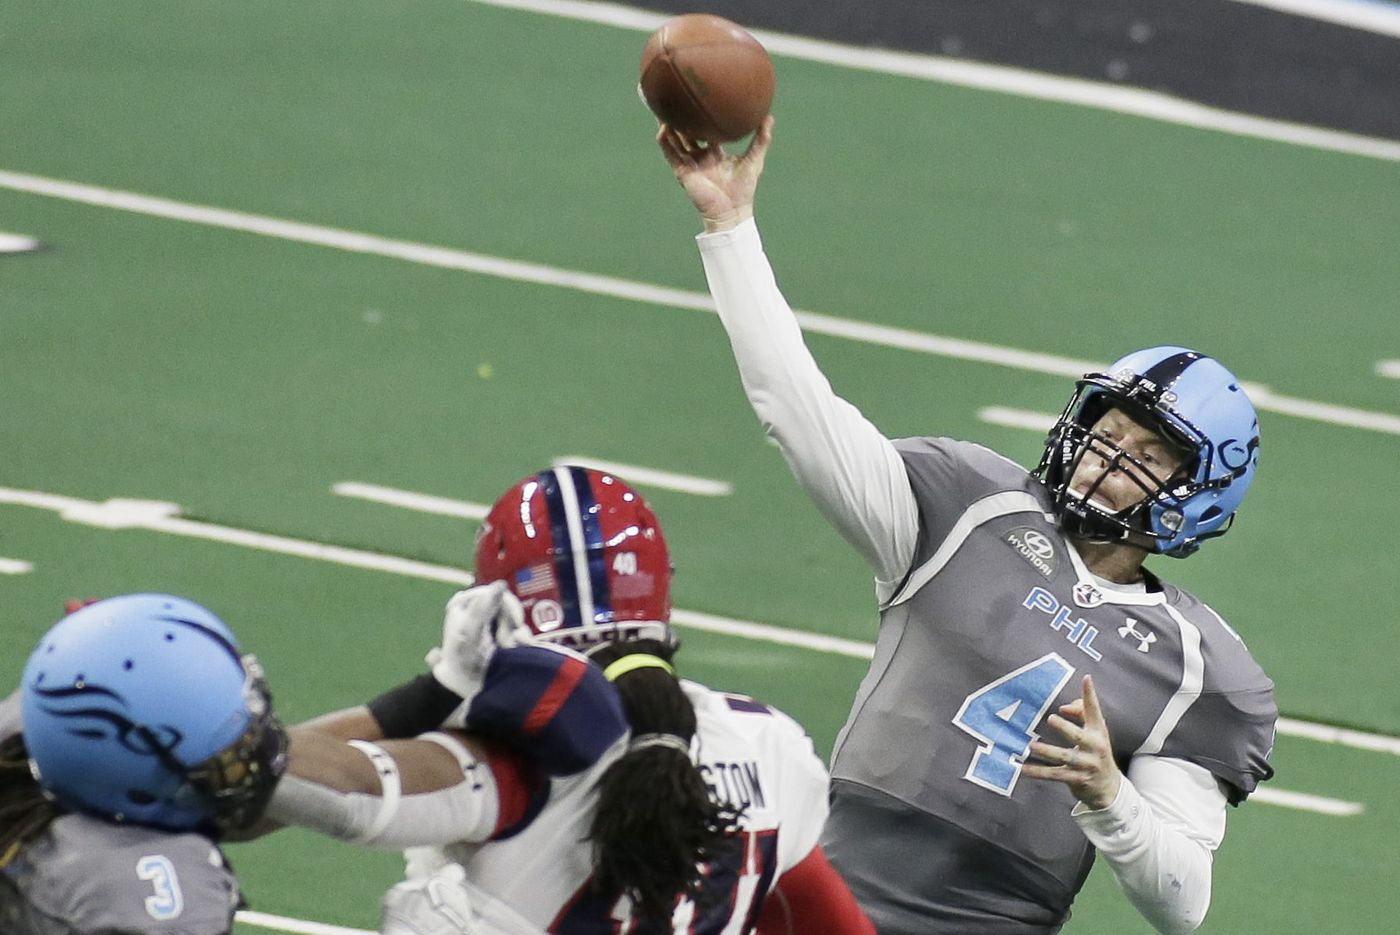 Soul owner Ron Jaworski believes the Arena Football League, down to just four teams, will rise again